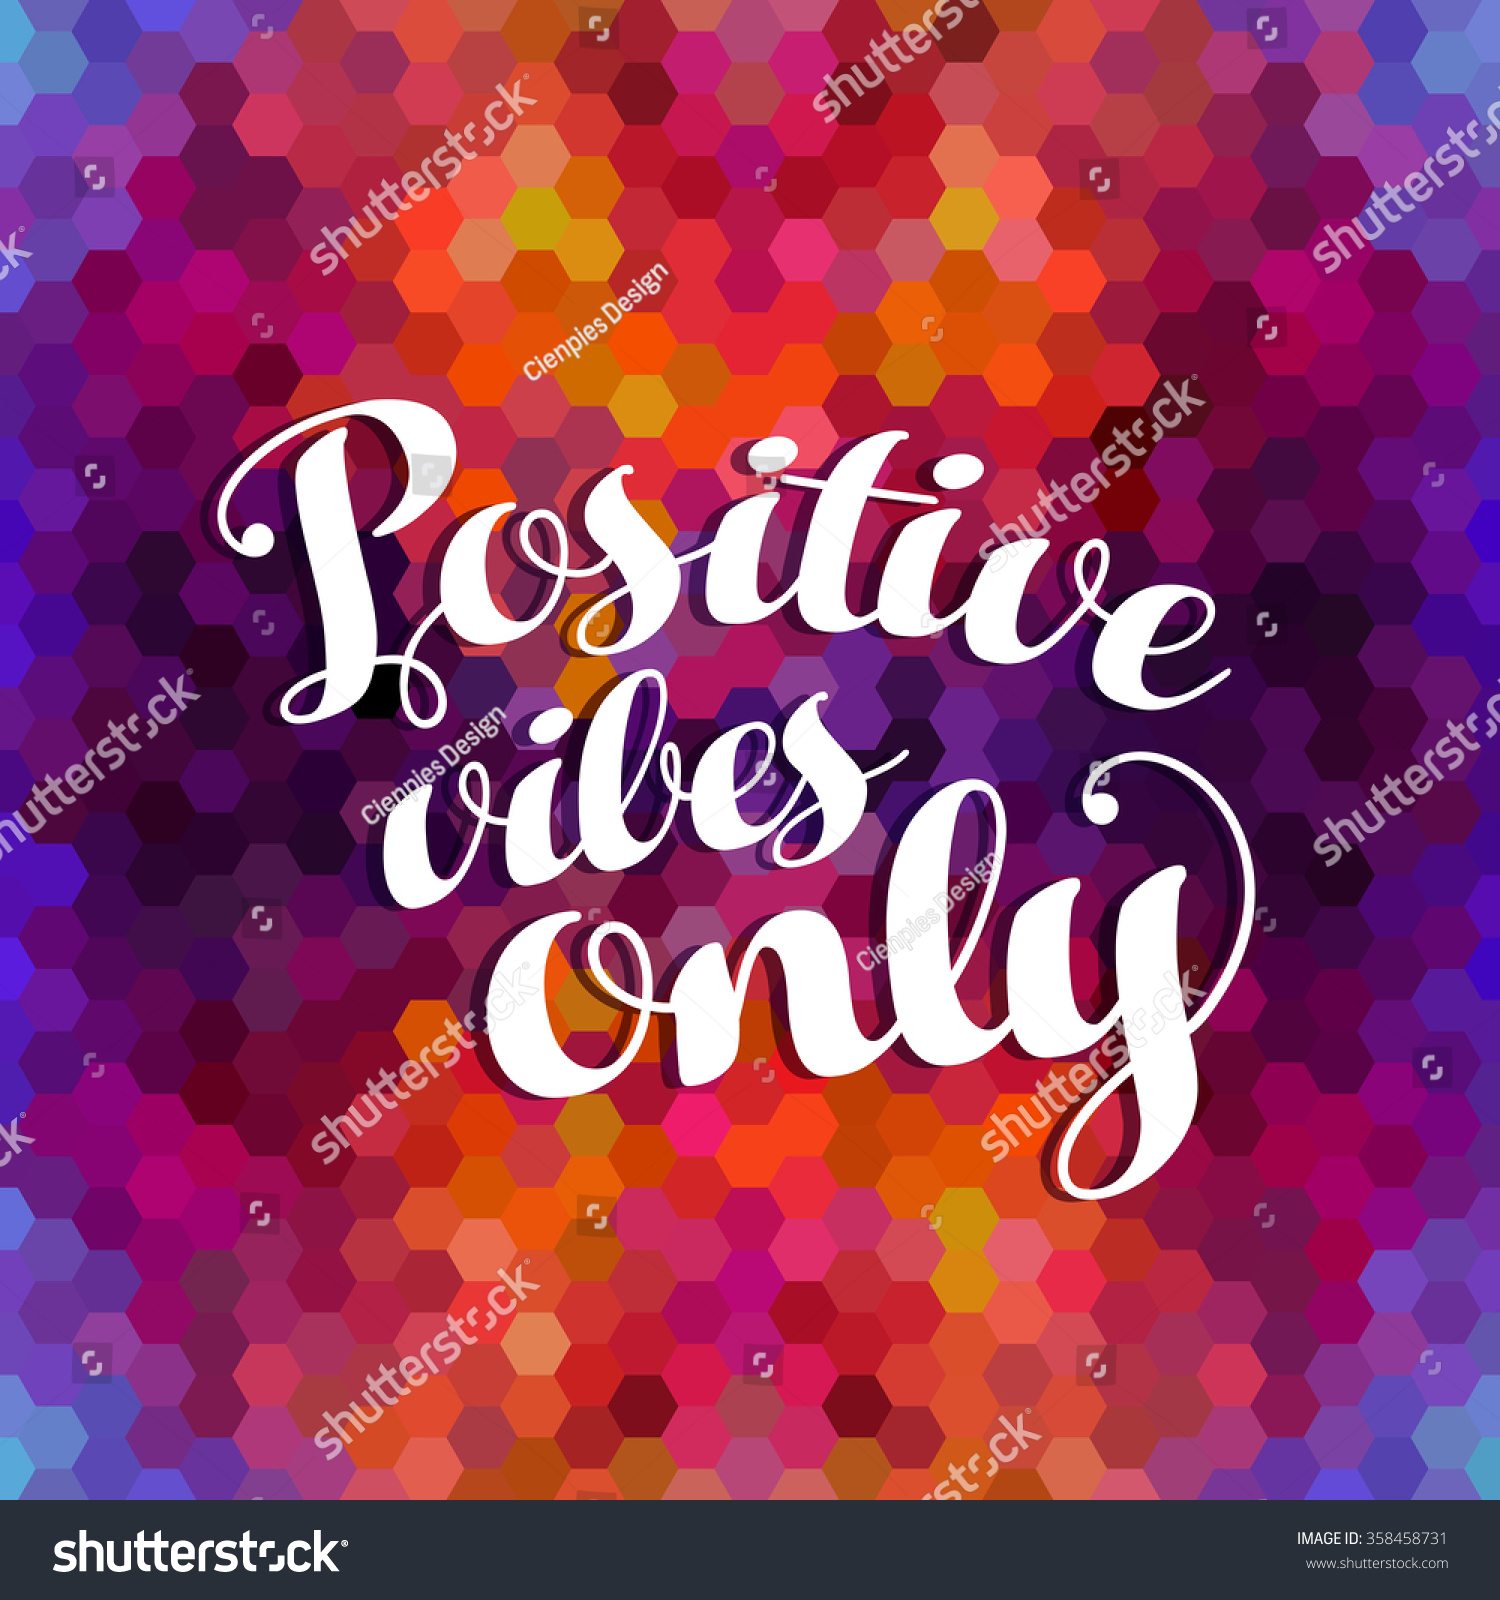 Quote poster design inspiration - Pics Photos Colorful Quotes Outlook Funny Inspirational